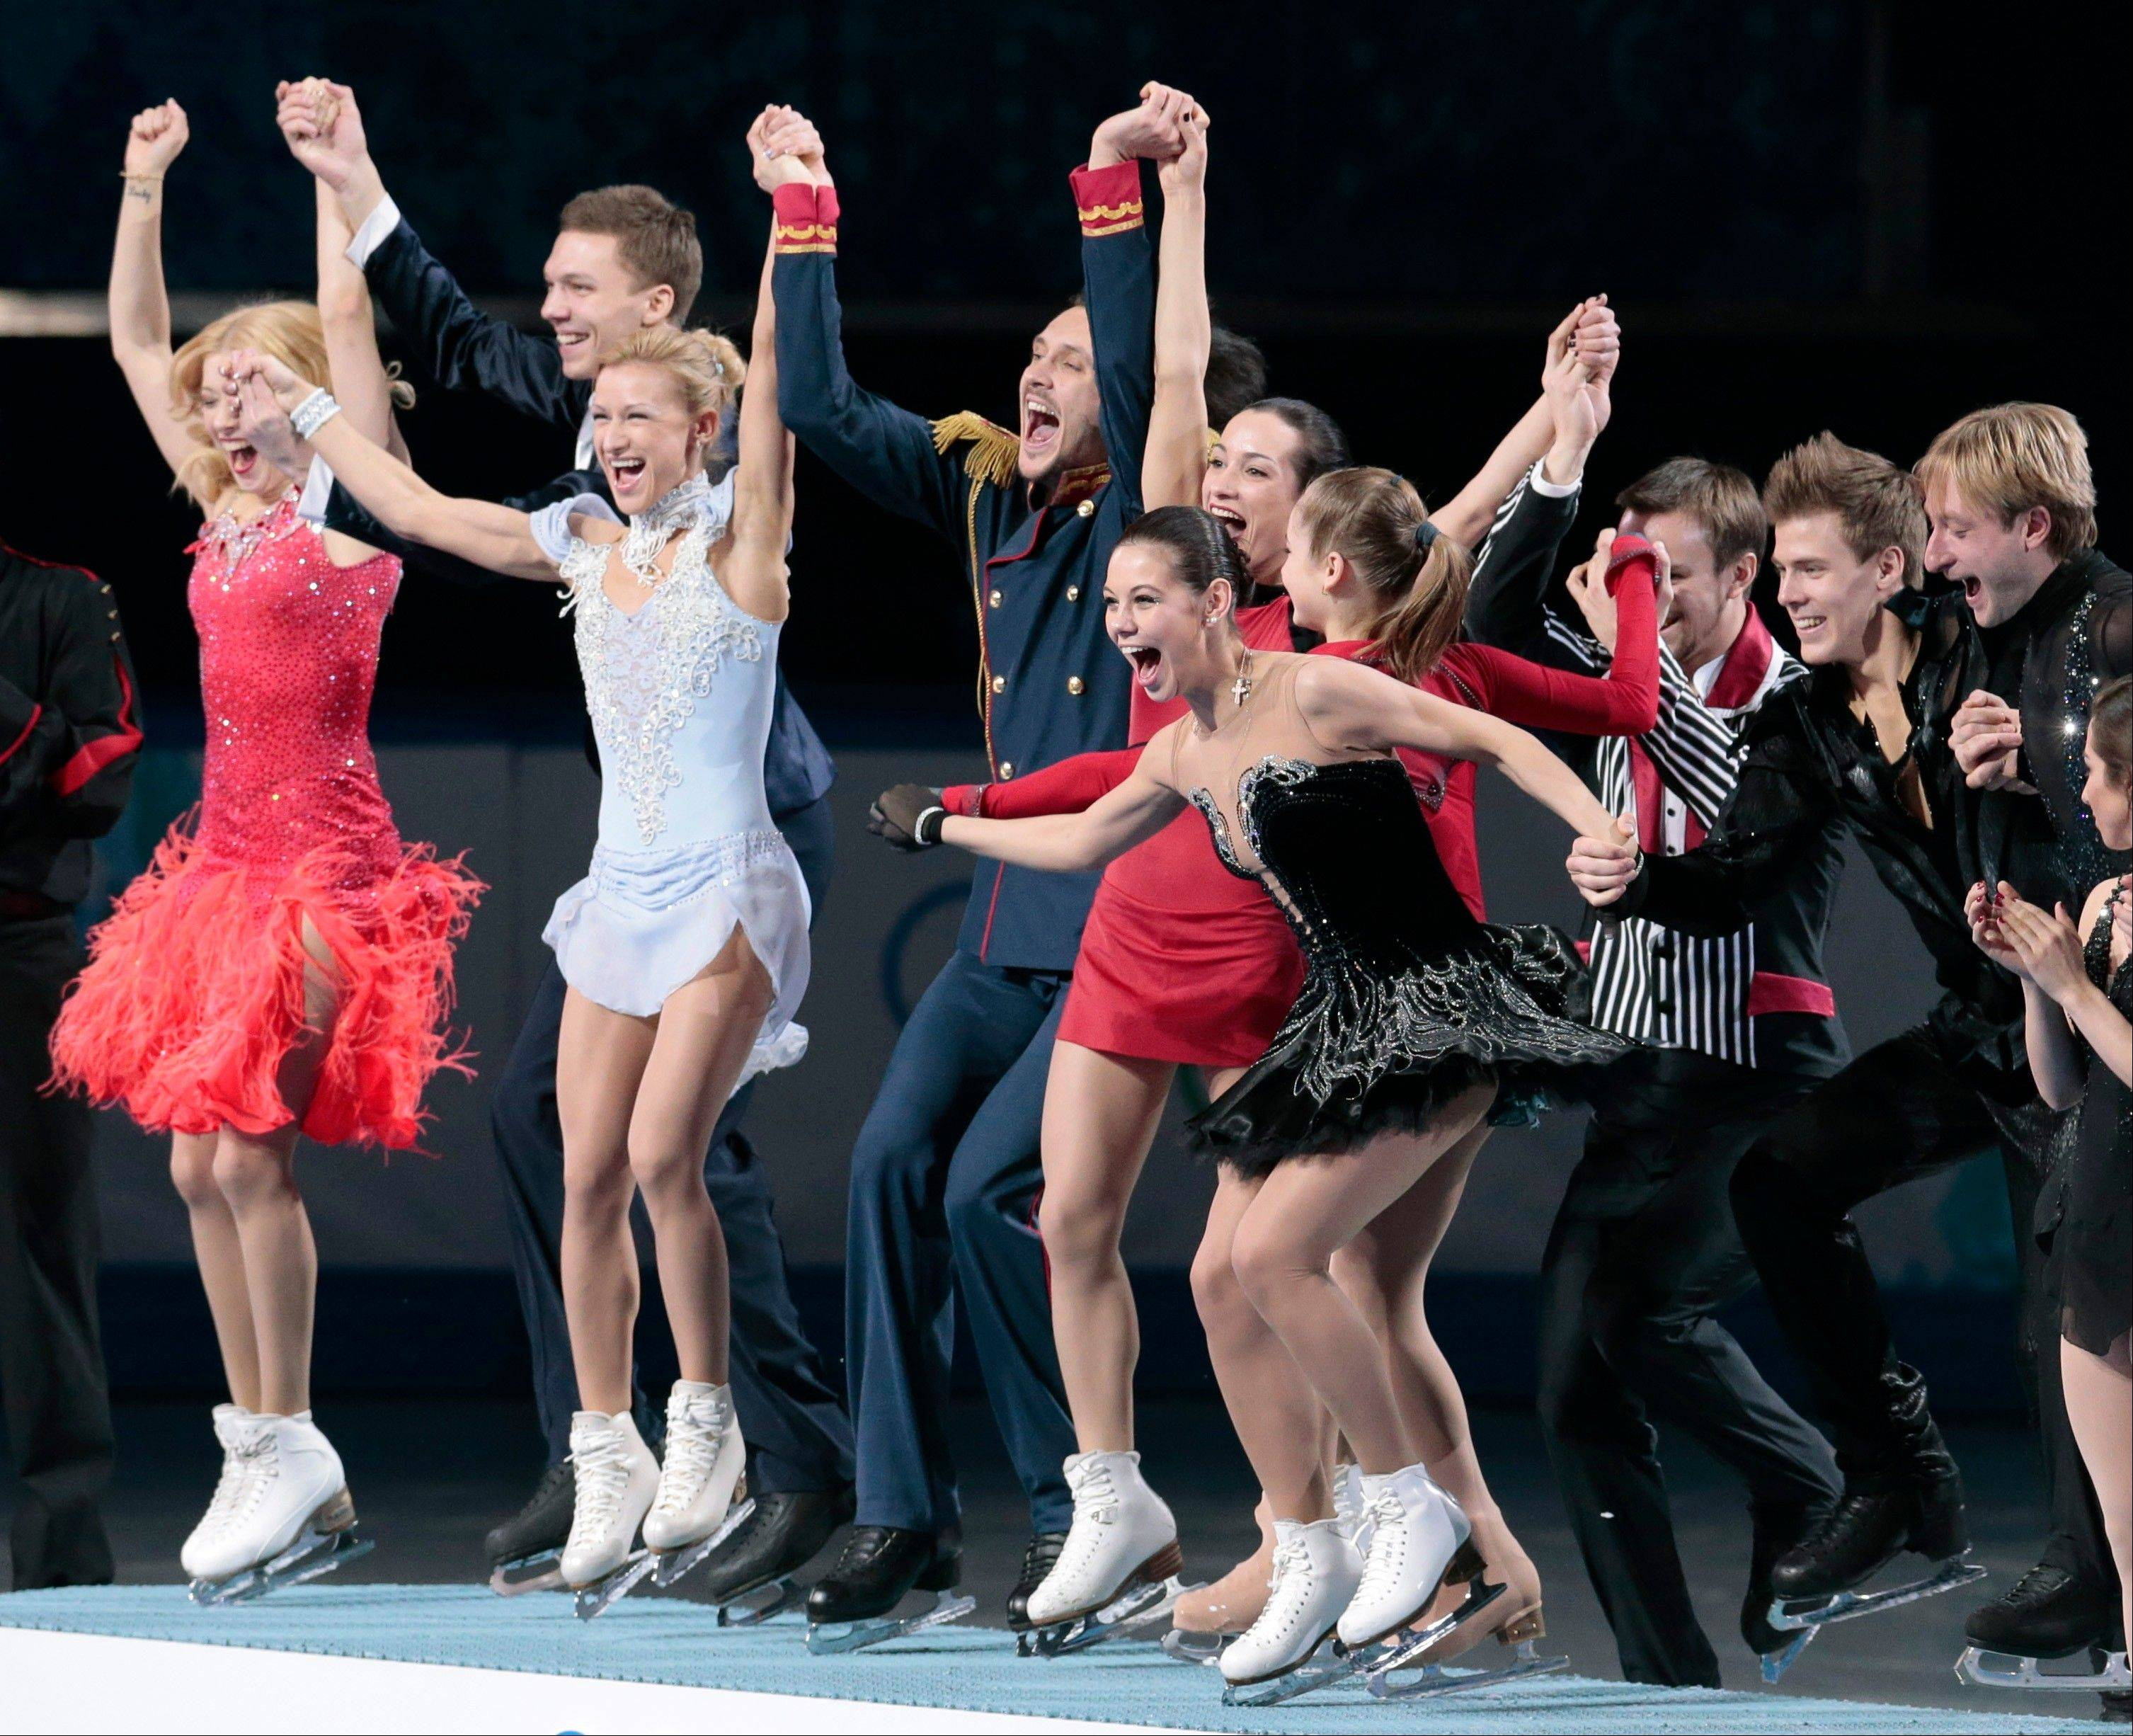 The Russian team wave to spectators as they stand on the podium during the flower ceremony after placing first in the team figure skating competition at the Iceberg Skating Palace during the 2014 Winter Olympics, Sunday, Feb. 9, 2014, in Sochi, Russia.